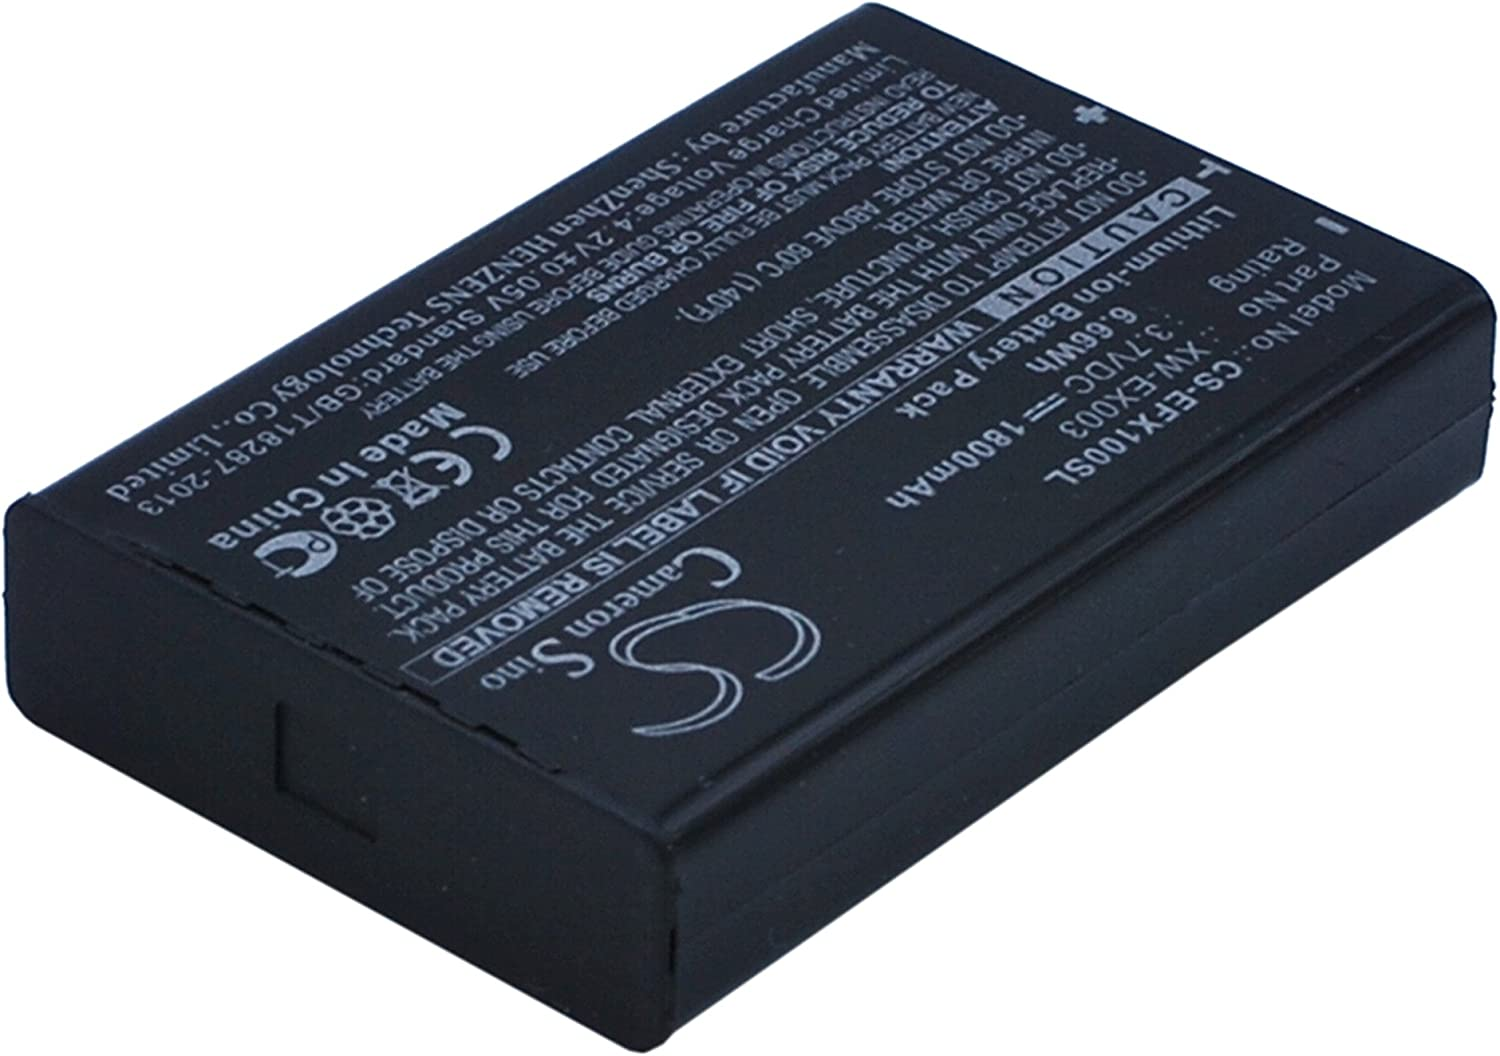 Battery Max 56% OFF Compatible with EXFO FOT-600 OLTS FPM Max 79% OFF FOT-930 FPM-600